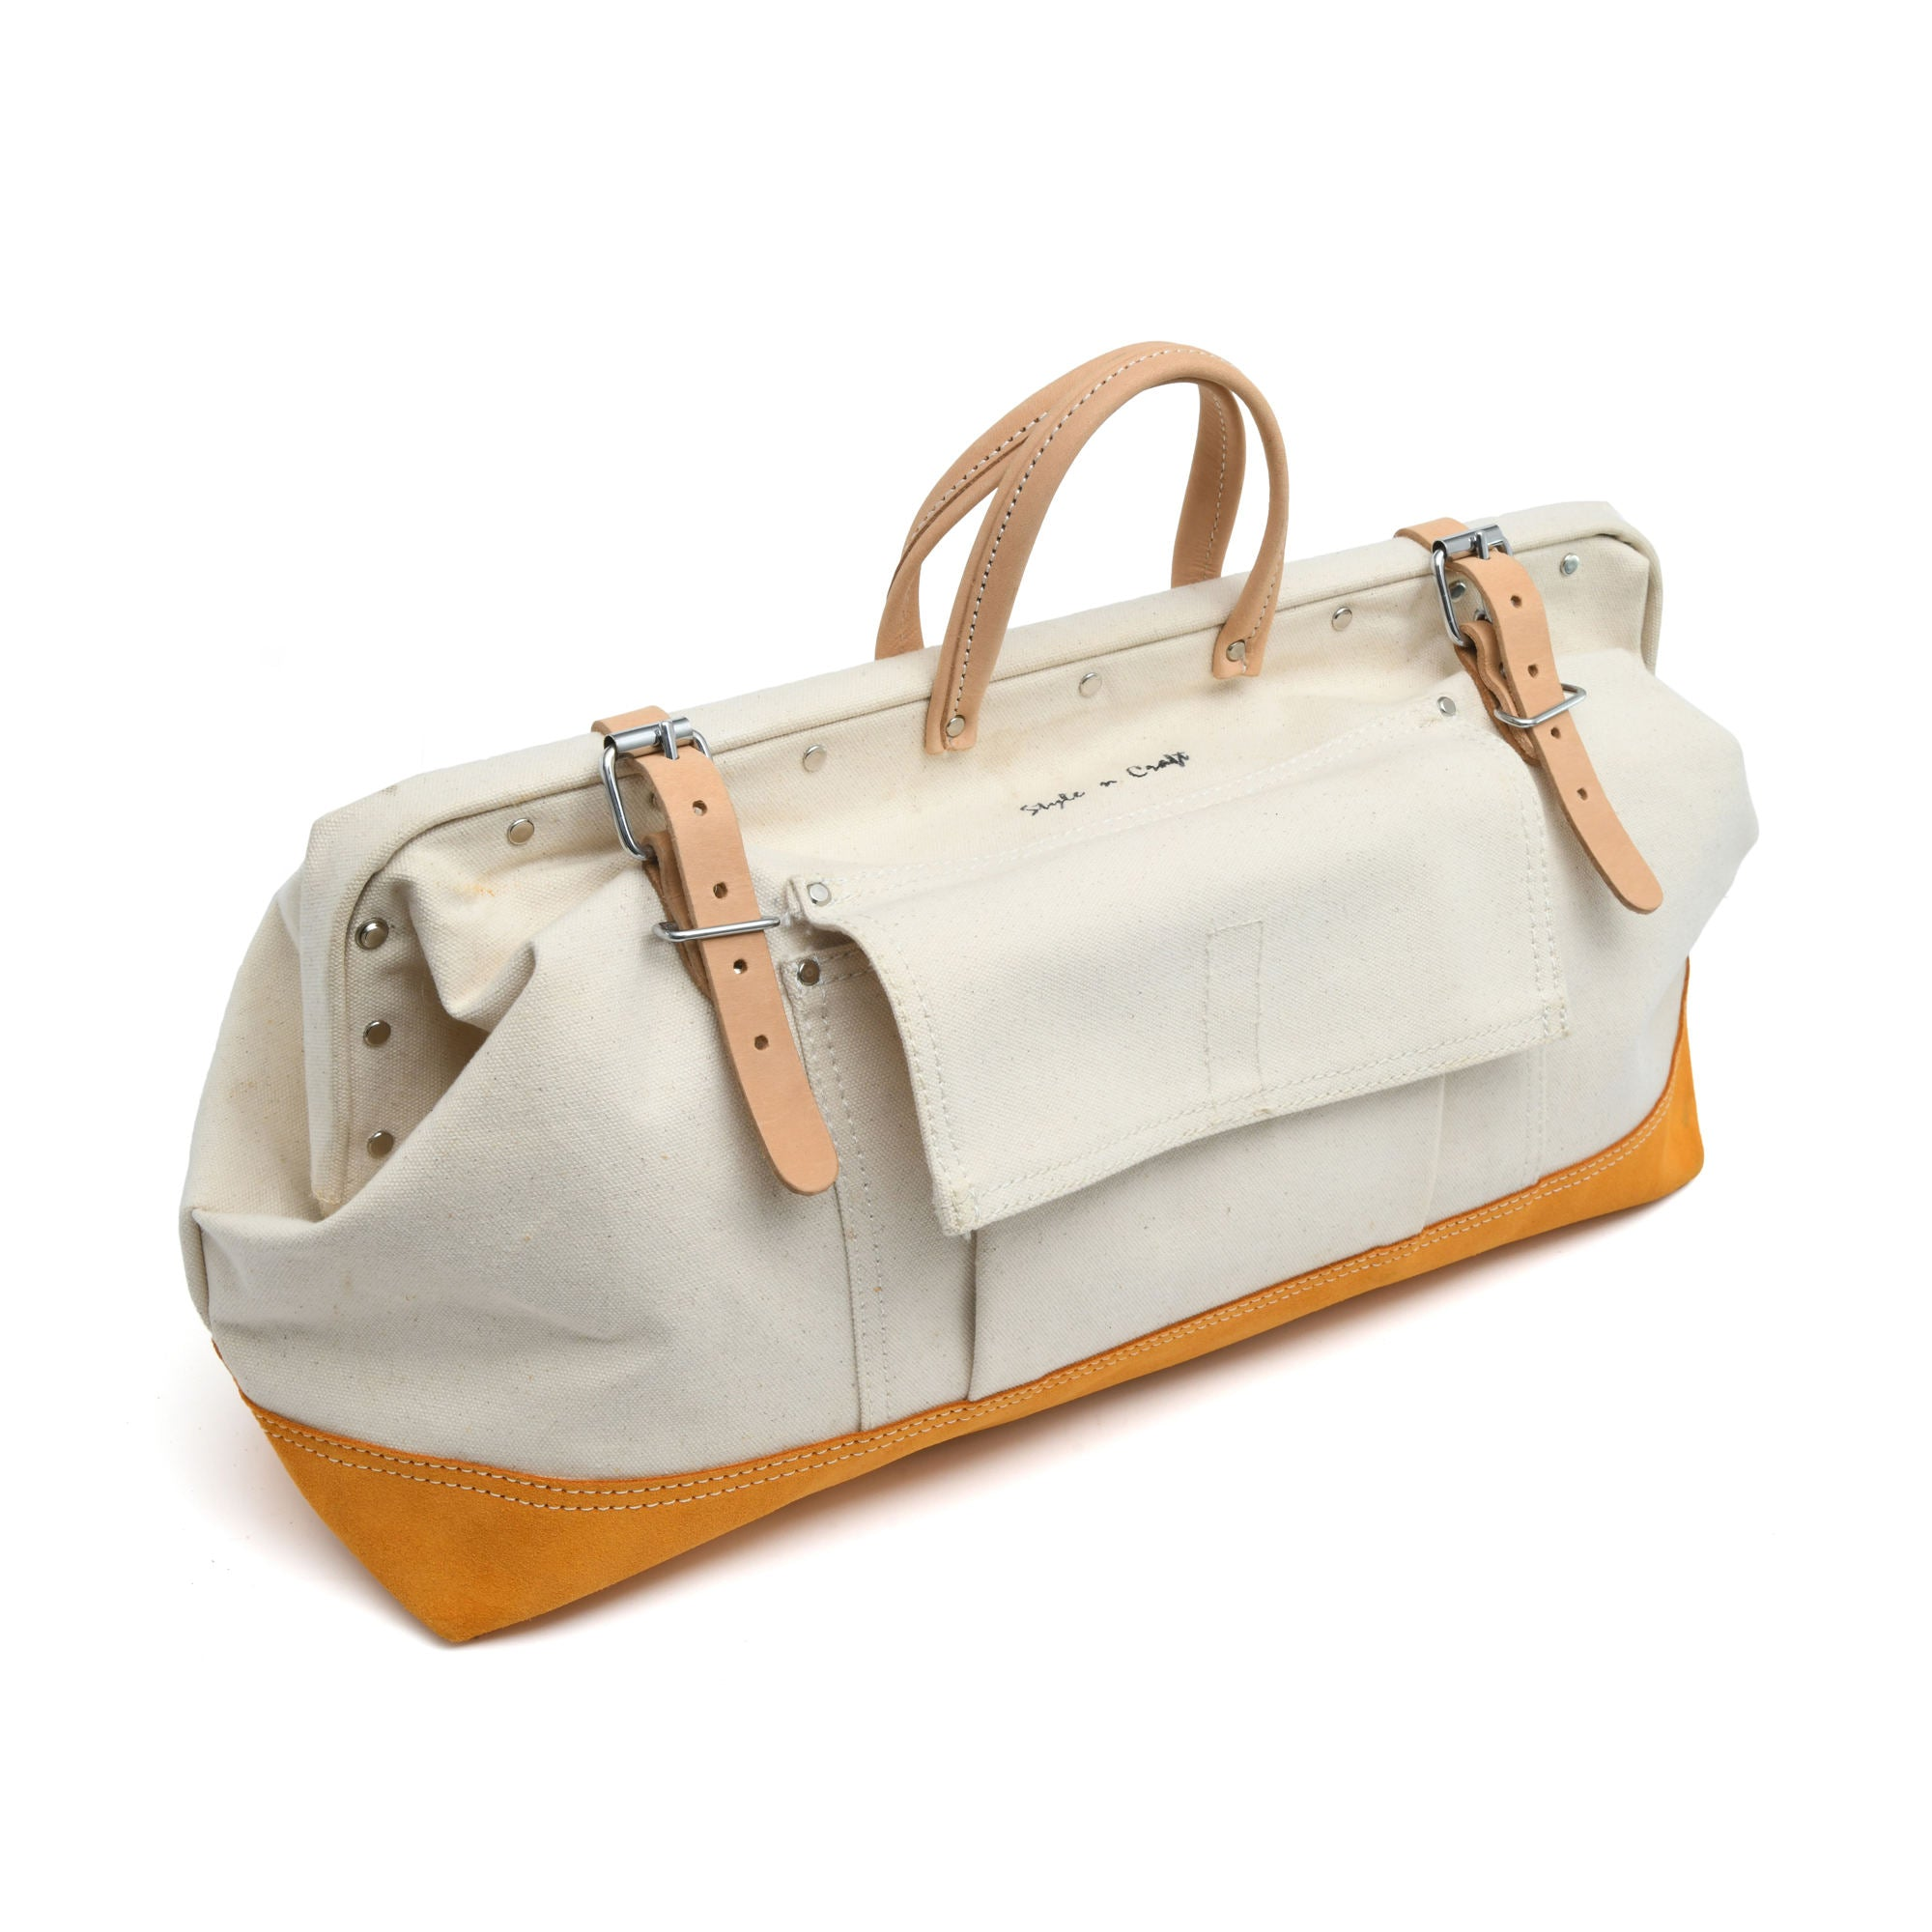 Style n Craft's 97516 - 20 Inch Mason's Tool Bag in White Canvas with Yellow Suede Leather Bottom, Handle & Straps in Leather - Front Closed View